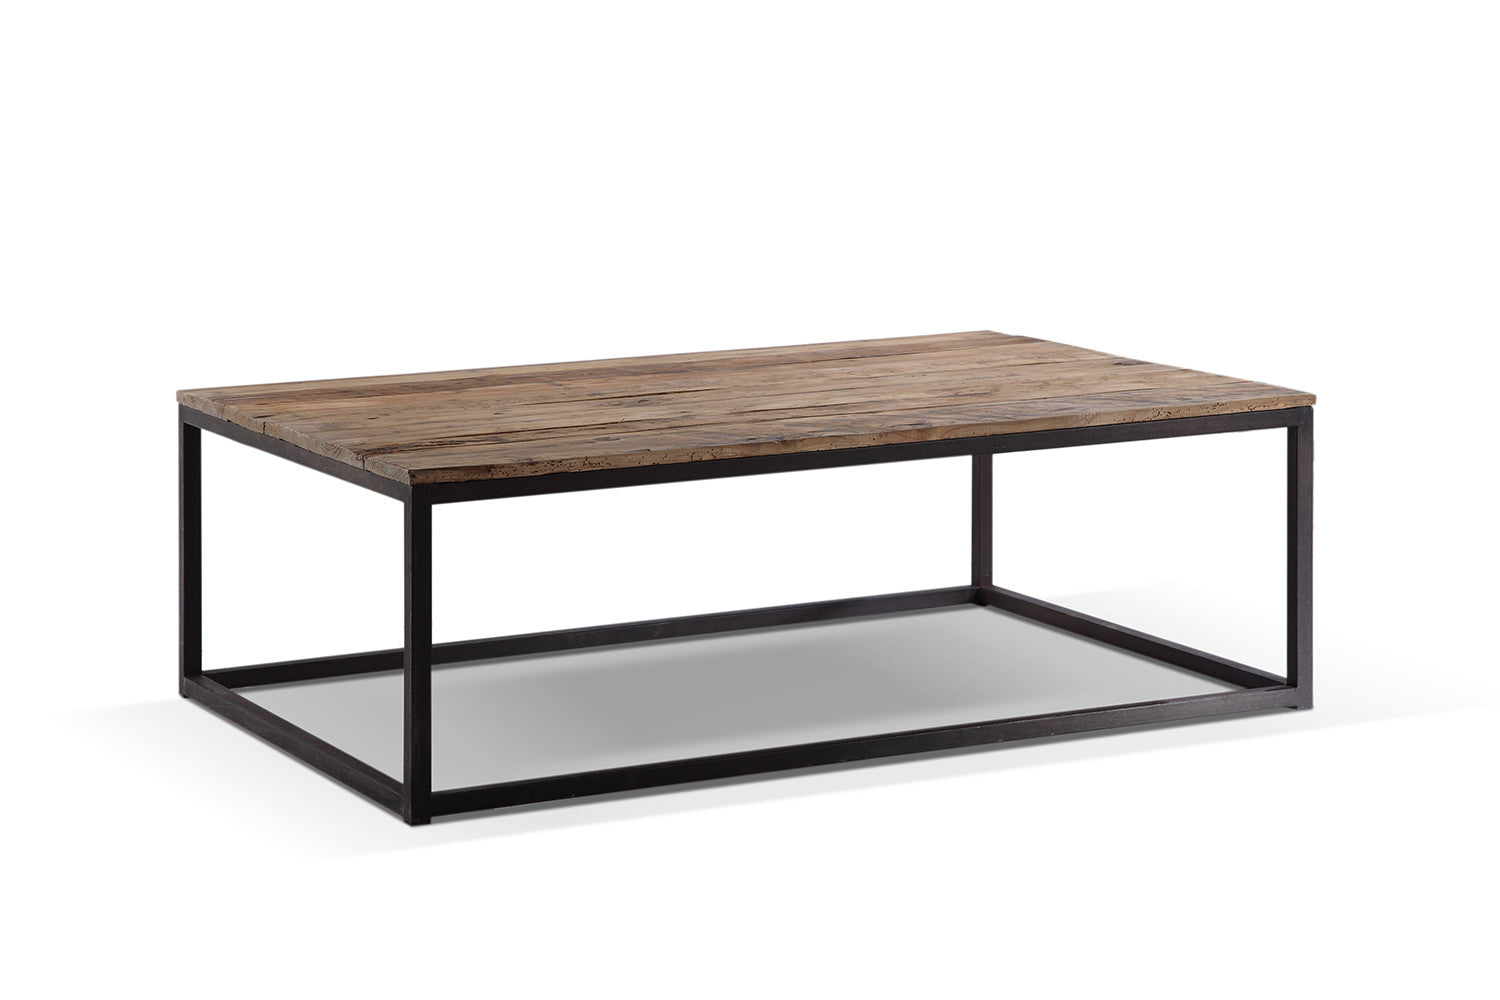 Table basse industrielle en m tal et bois rose moore for Table fer et bois